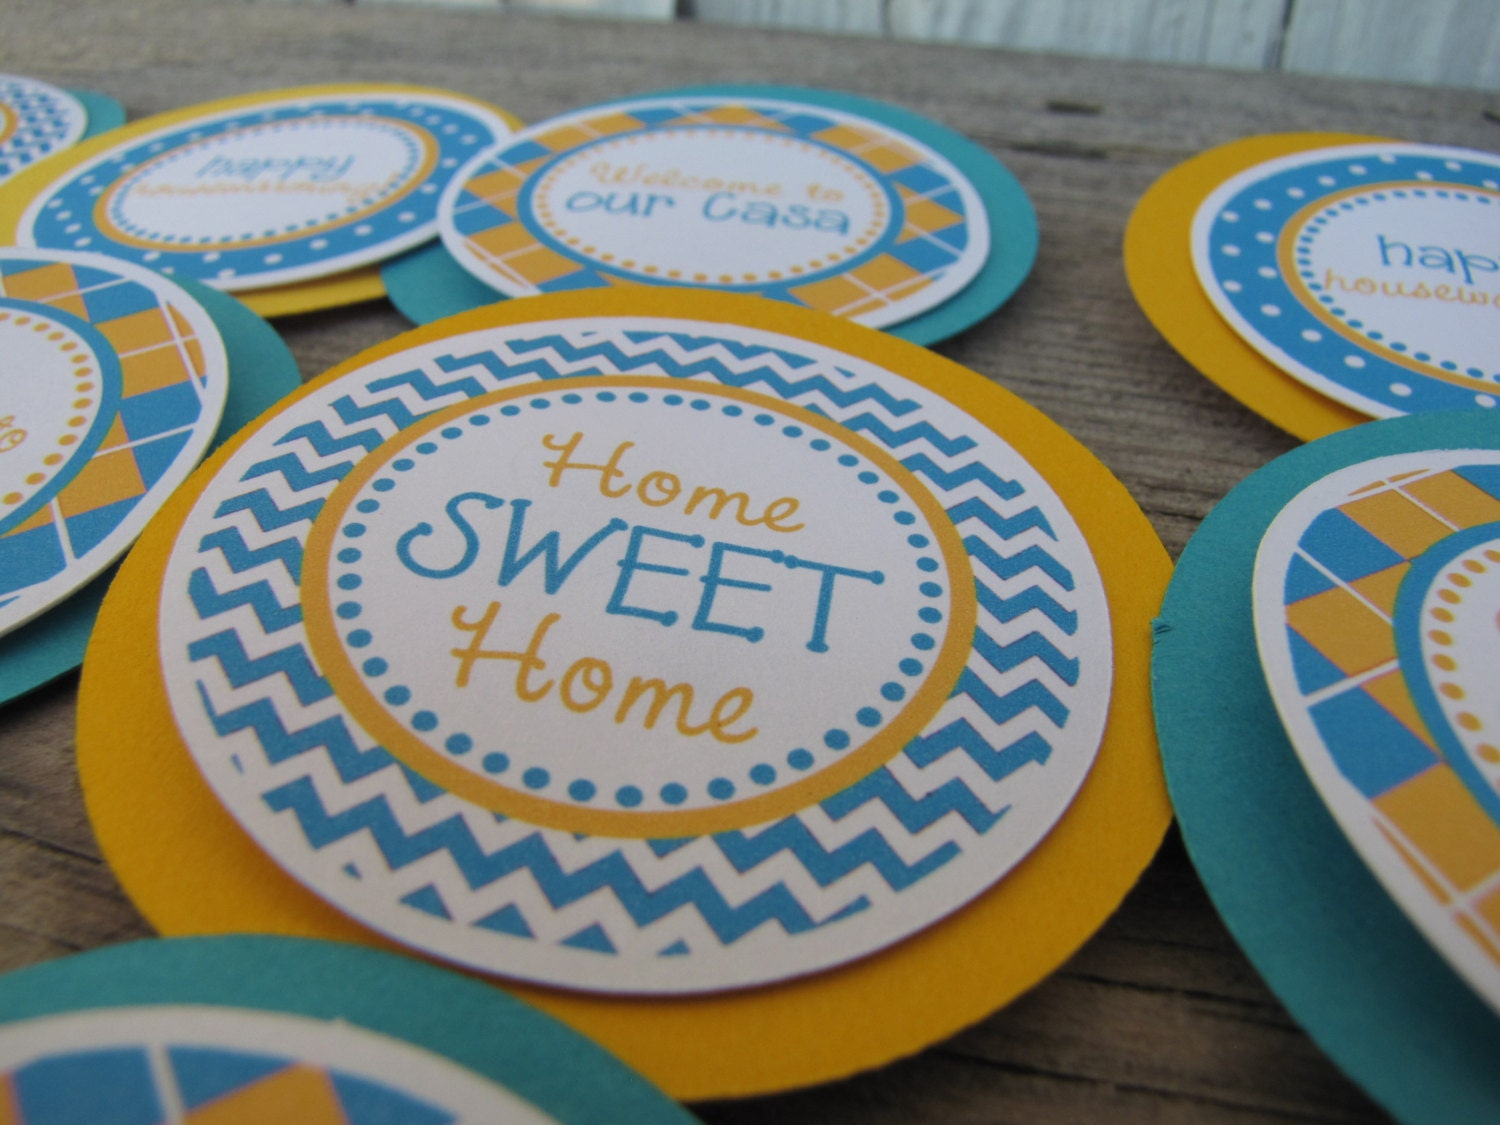 Cupcake decorating ideas for housewarming party